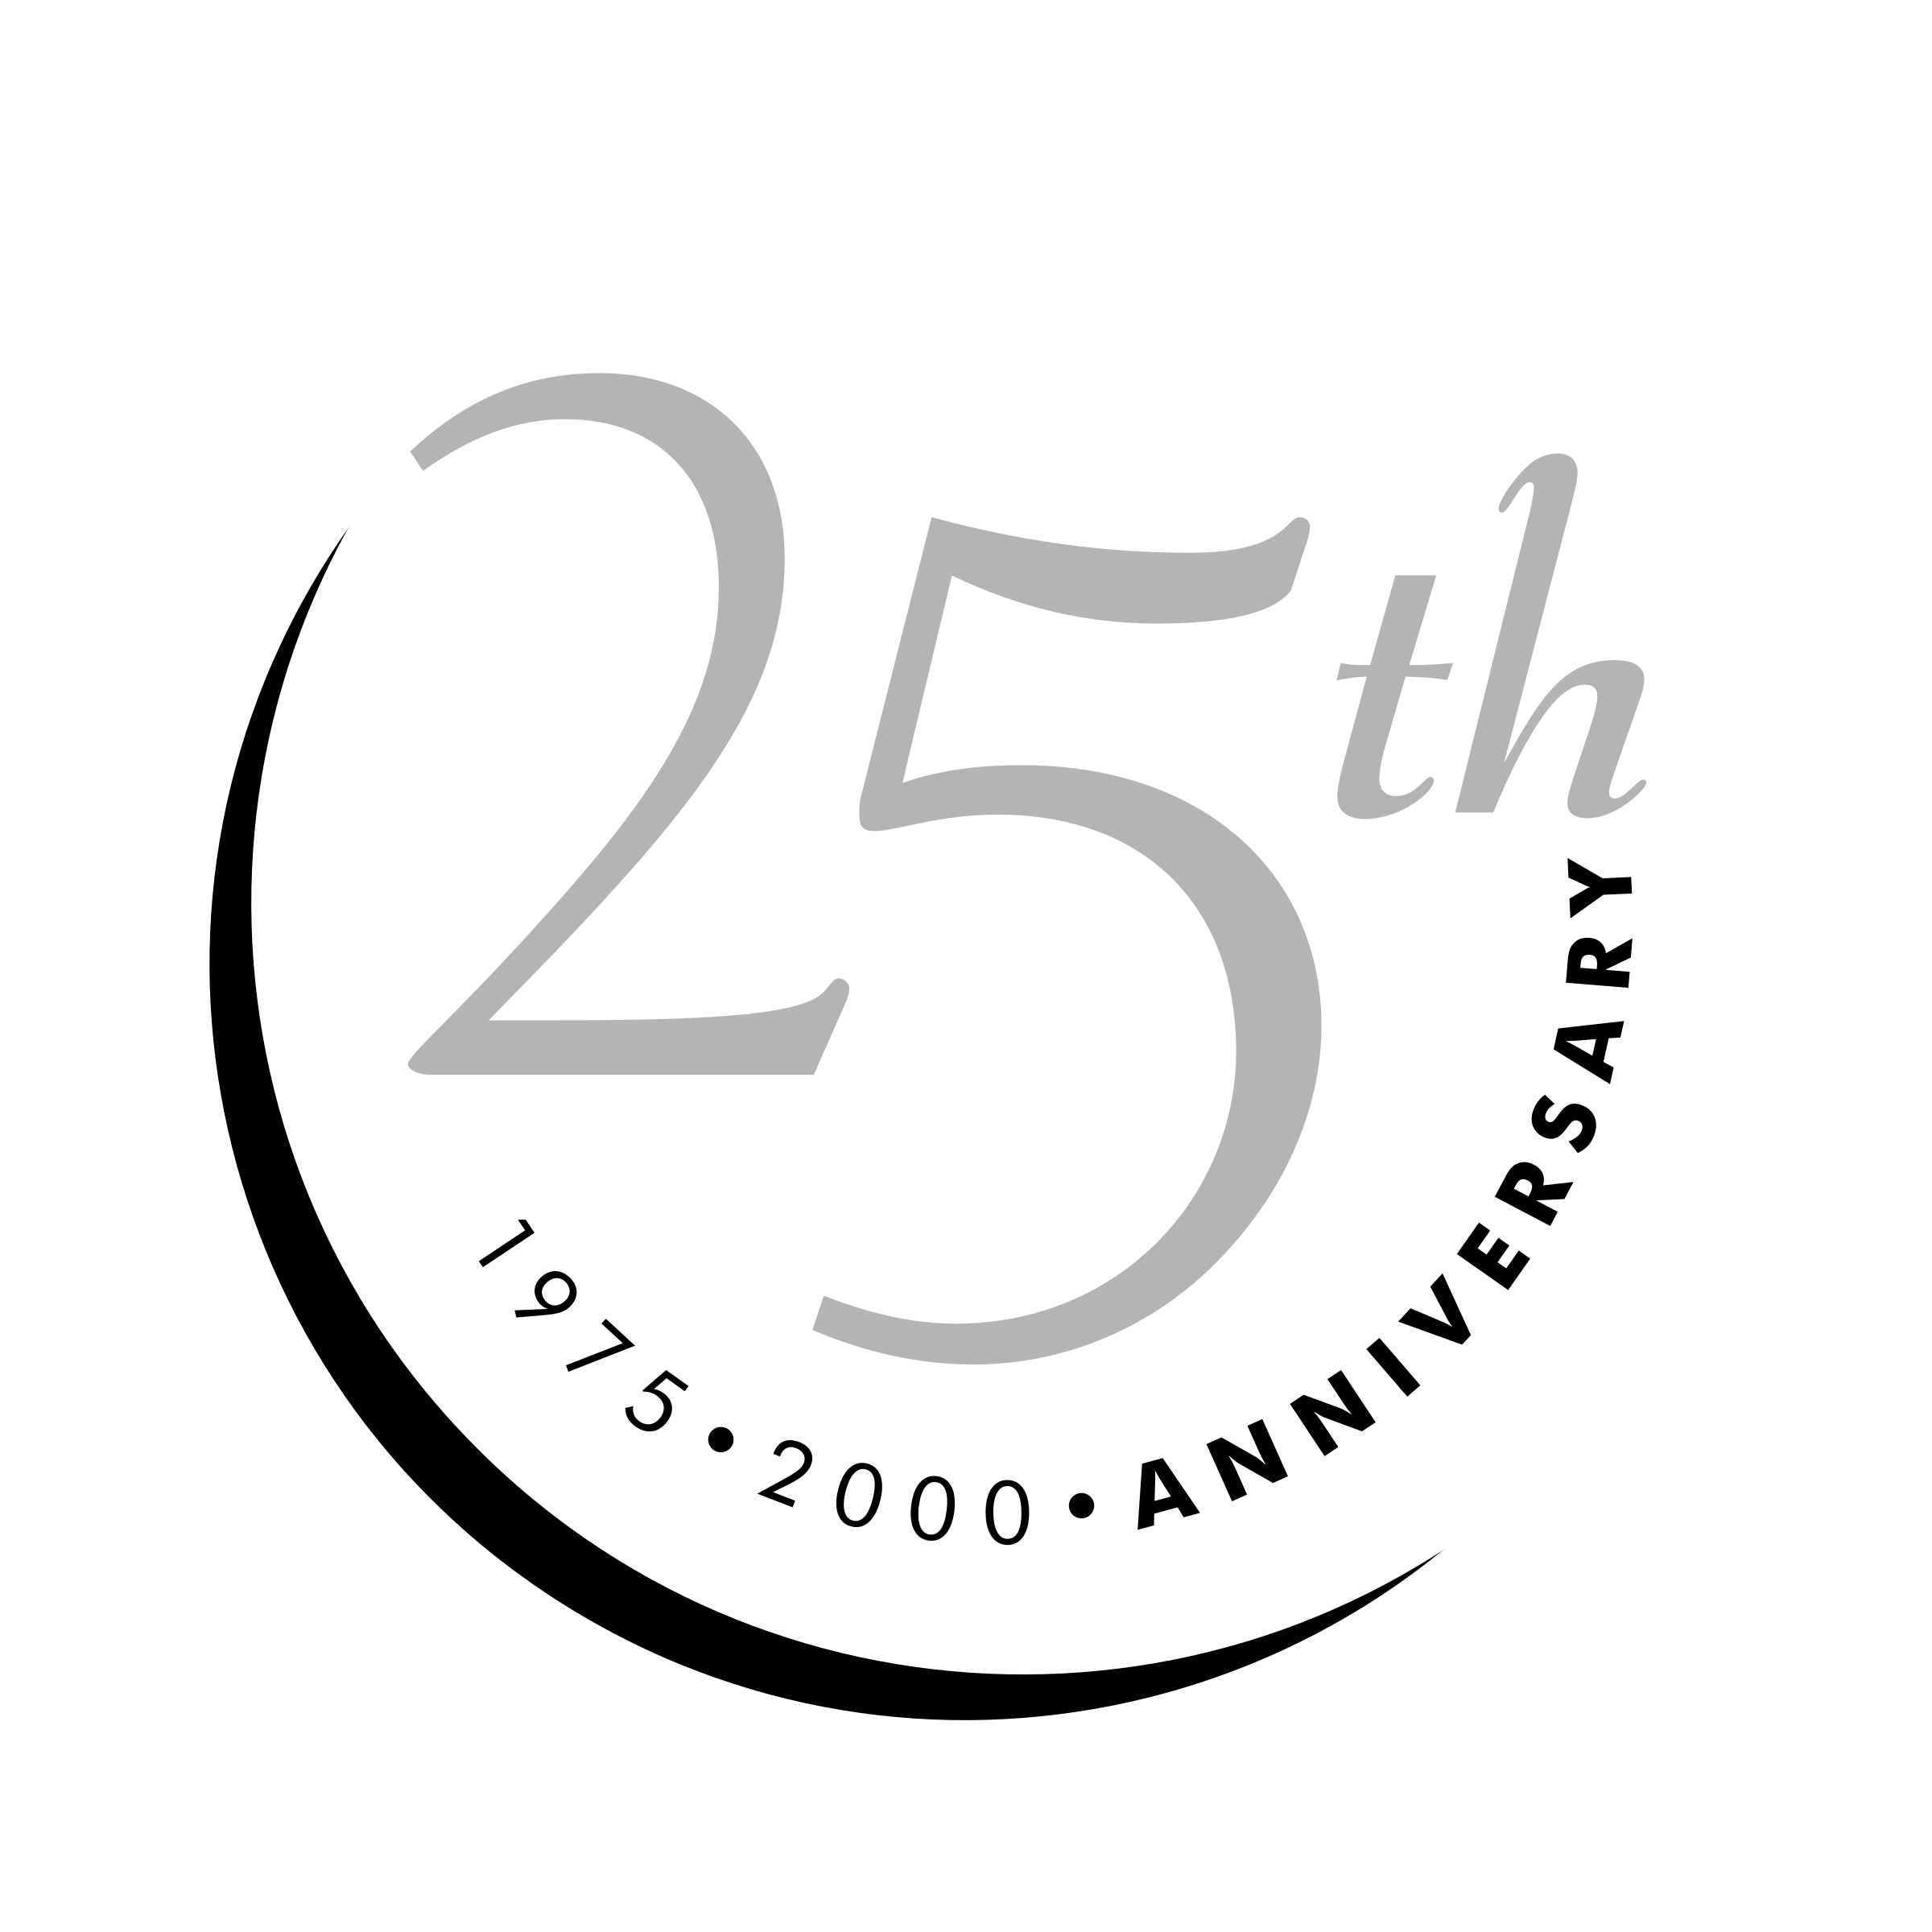 25th anniversary png th anniversary logo png transparent & svg vector - freebie